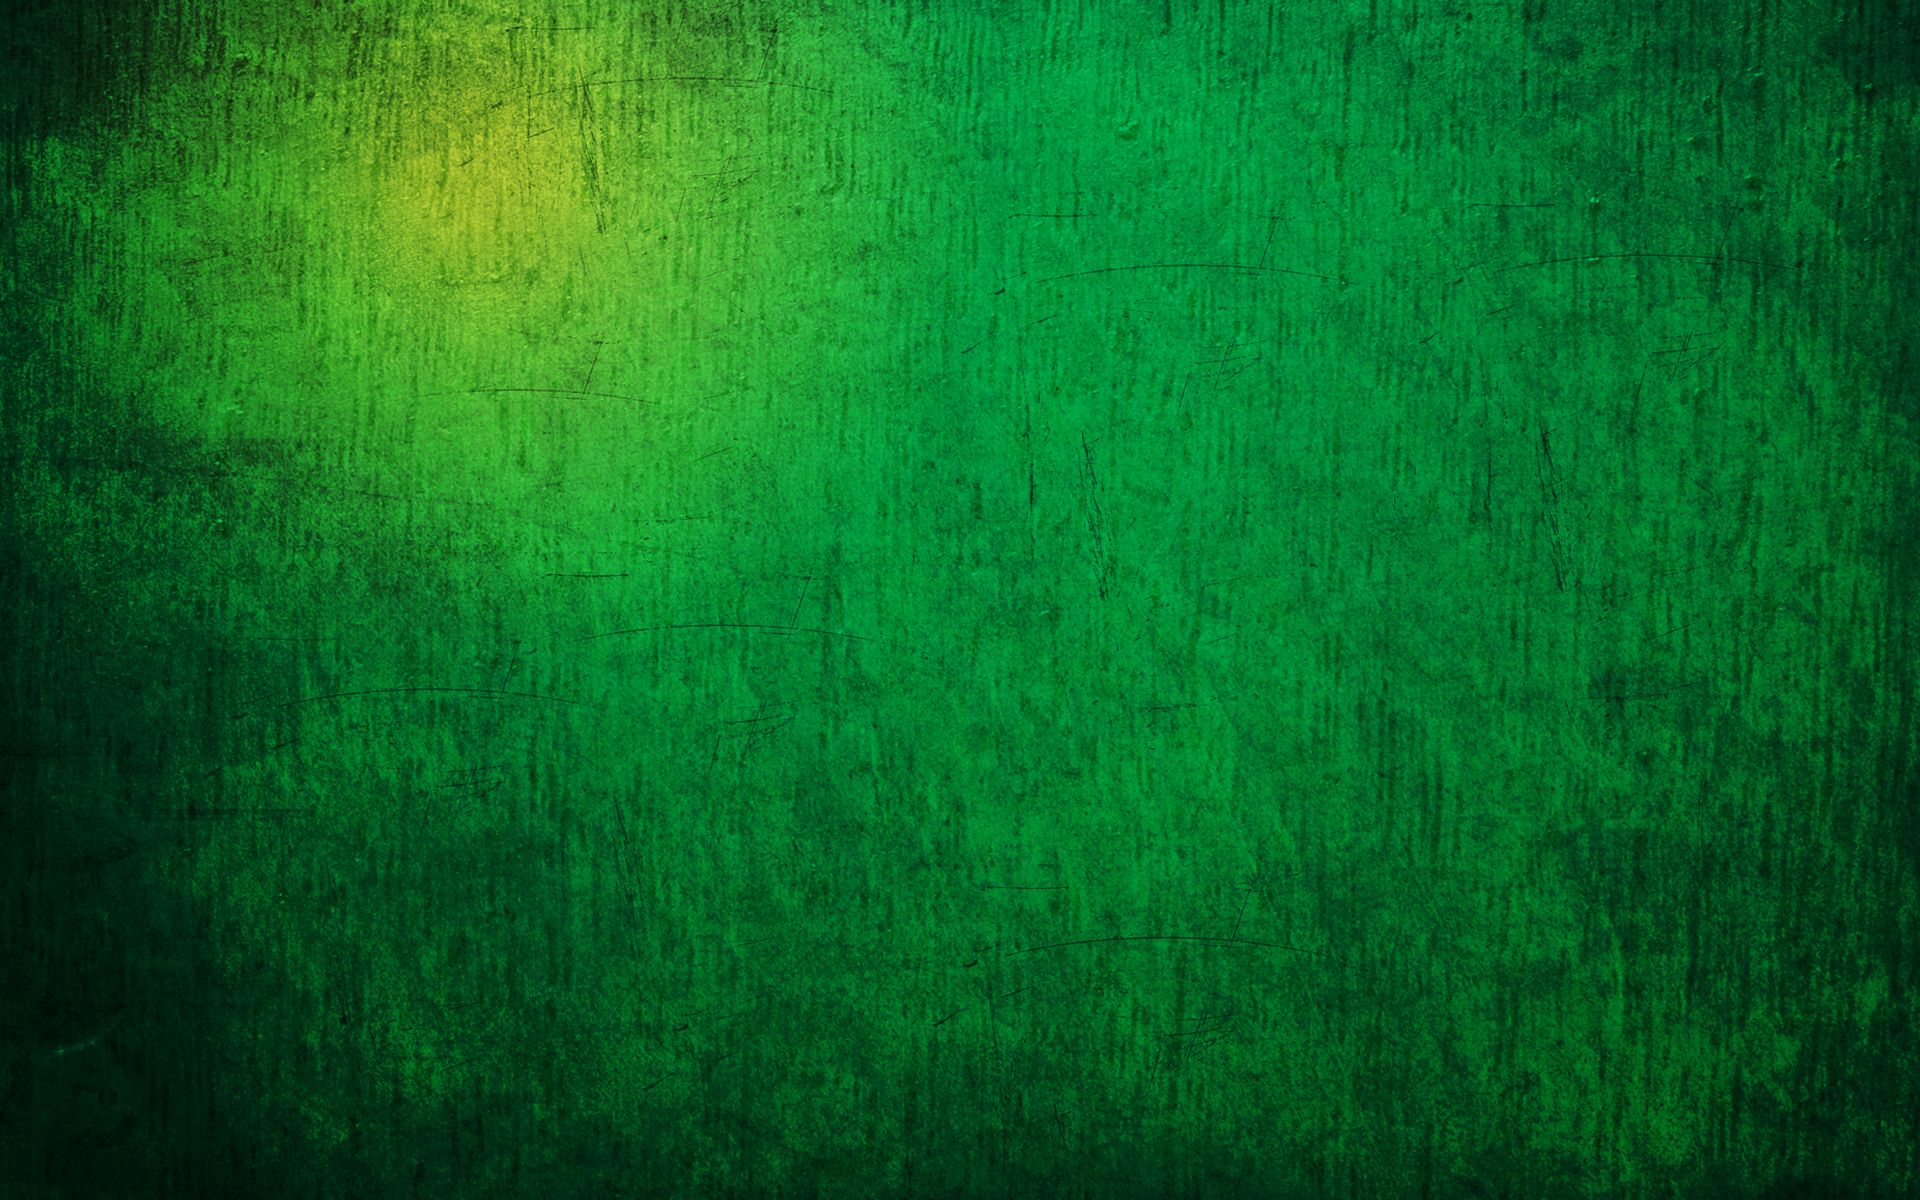 Green HD Wallpaper - WallpaperSafari